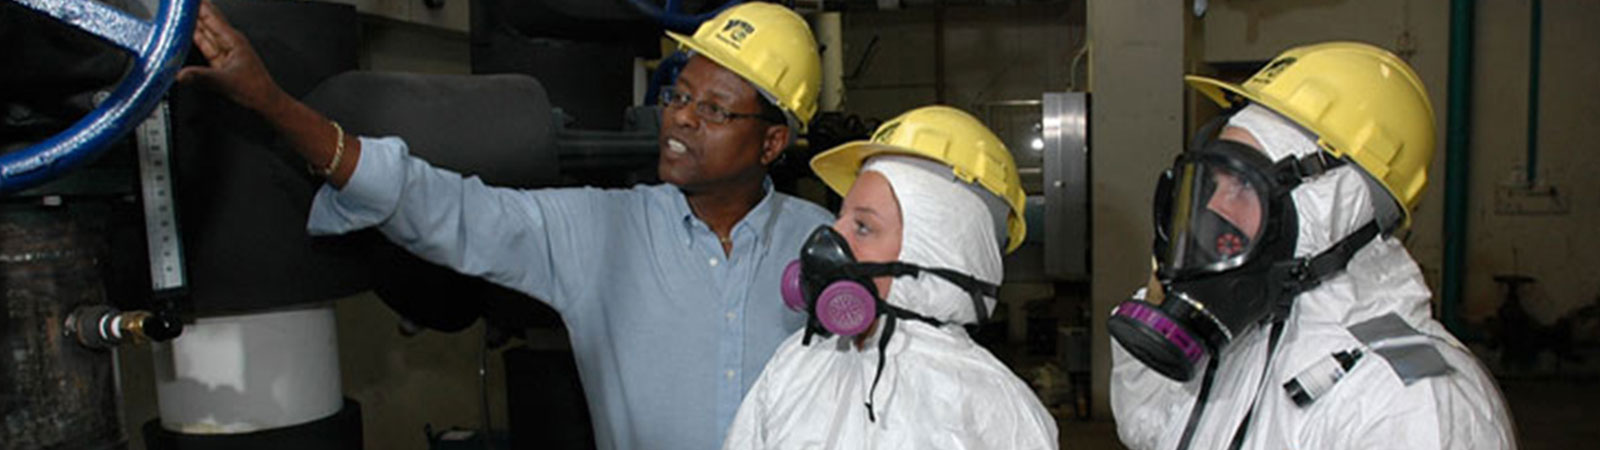 Faculty member with studetns wearing protective gear